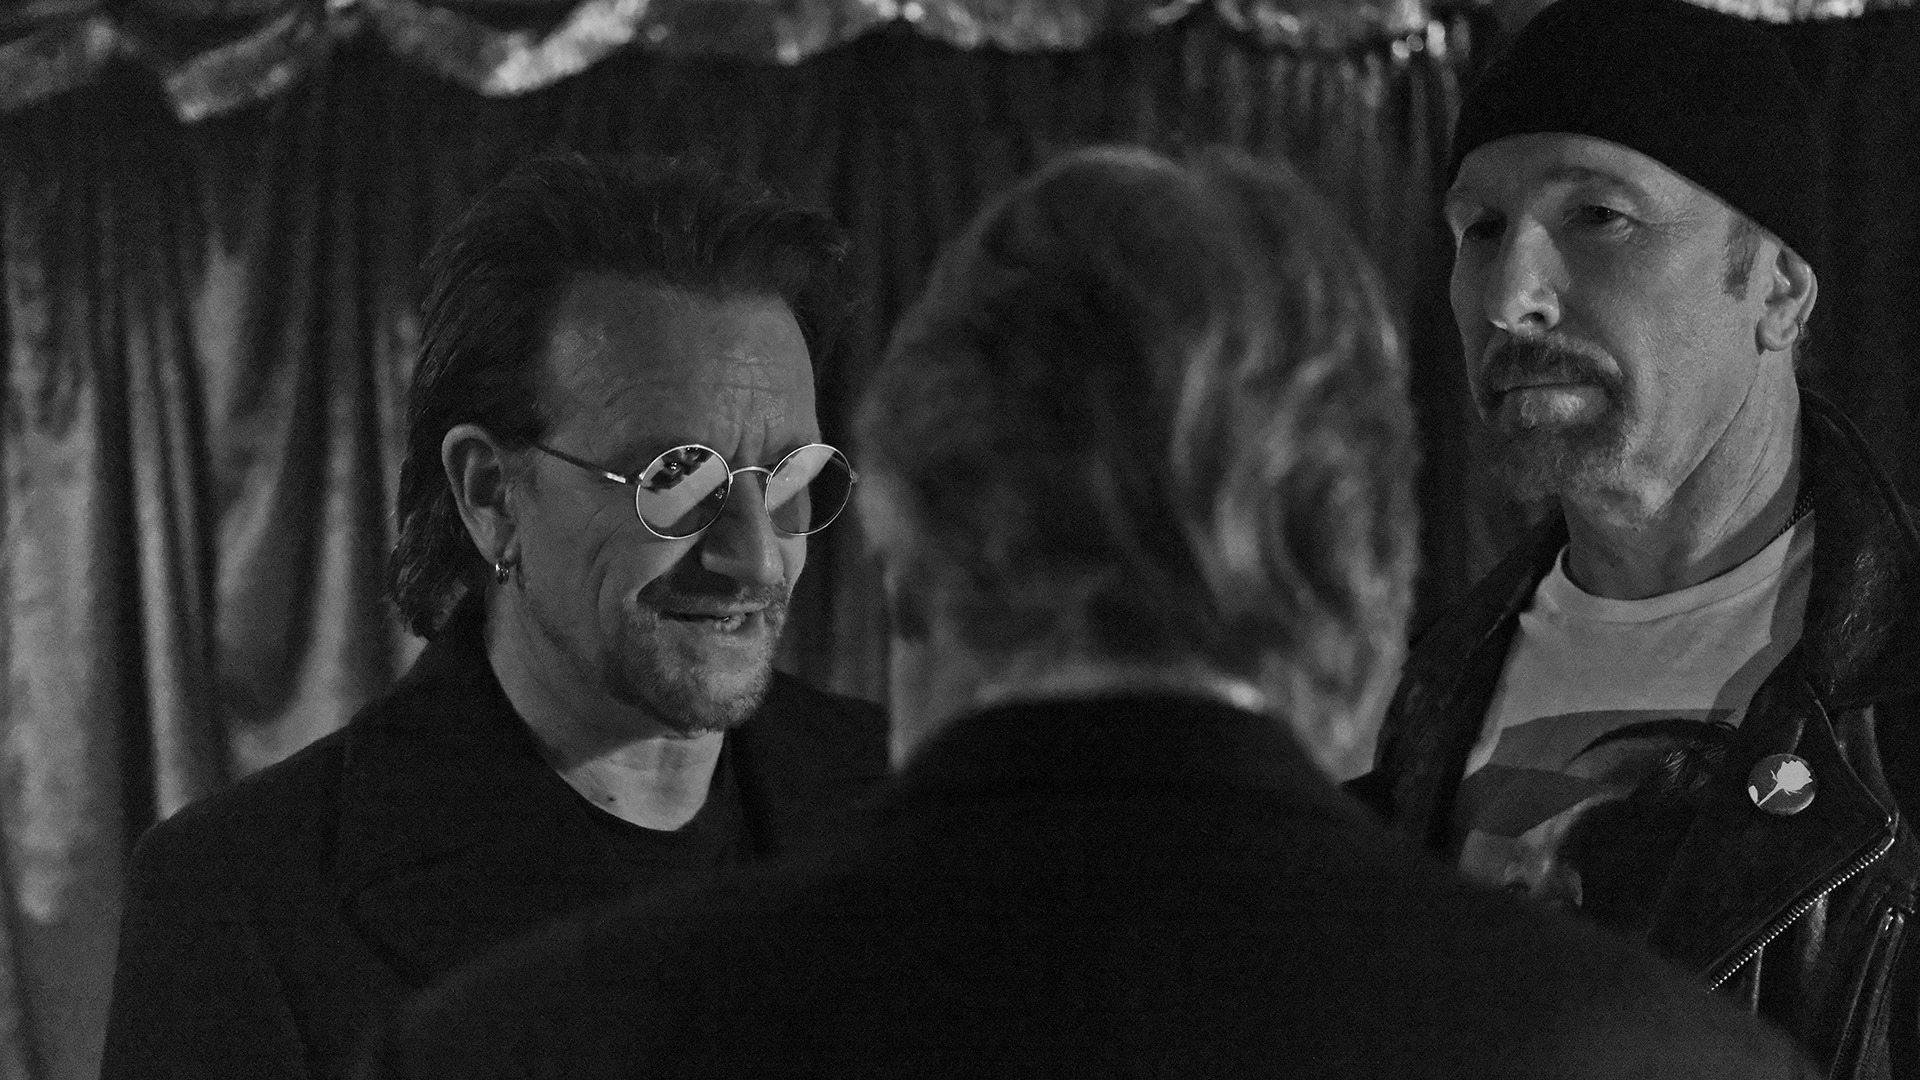 Irish rock legends Bono and The Edge pause to confer backstage in between performances at the 60th Annual GRAMMY Awards.